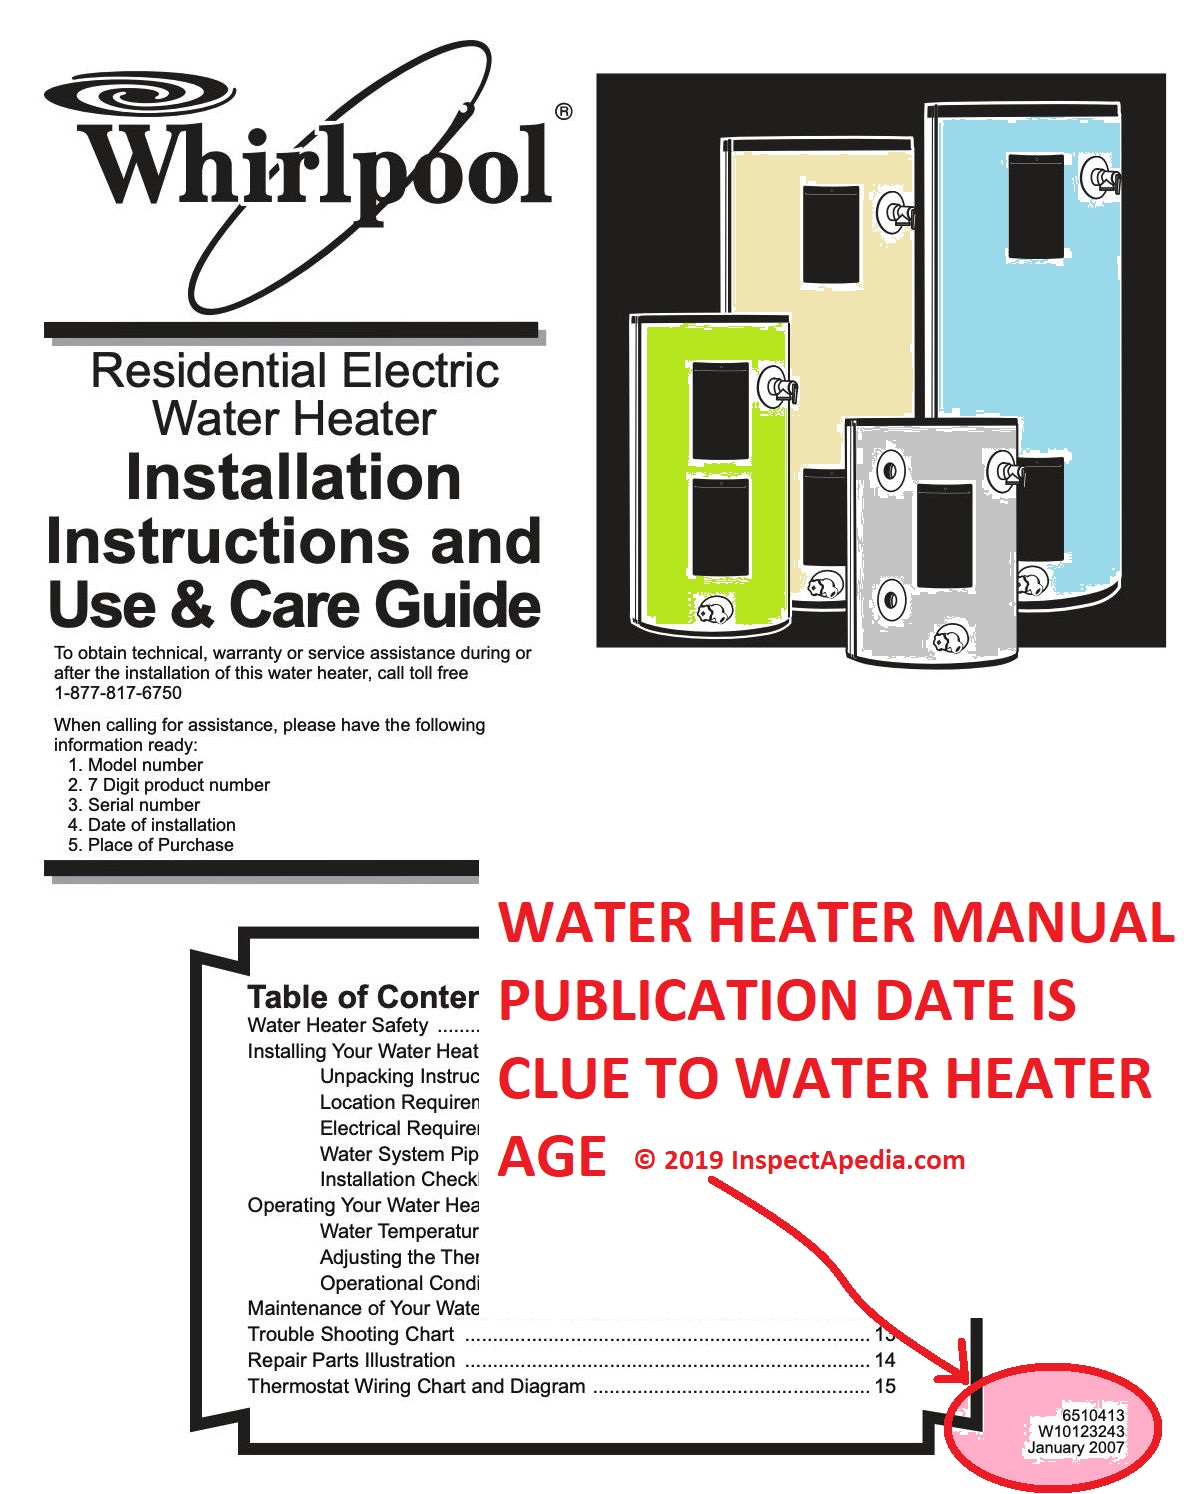 whirlpool water heater age